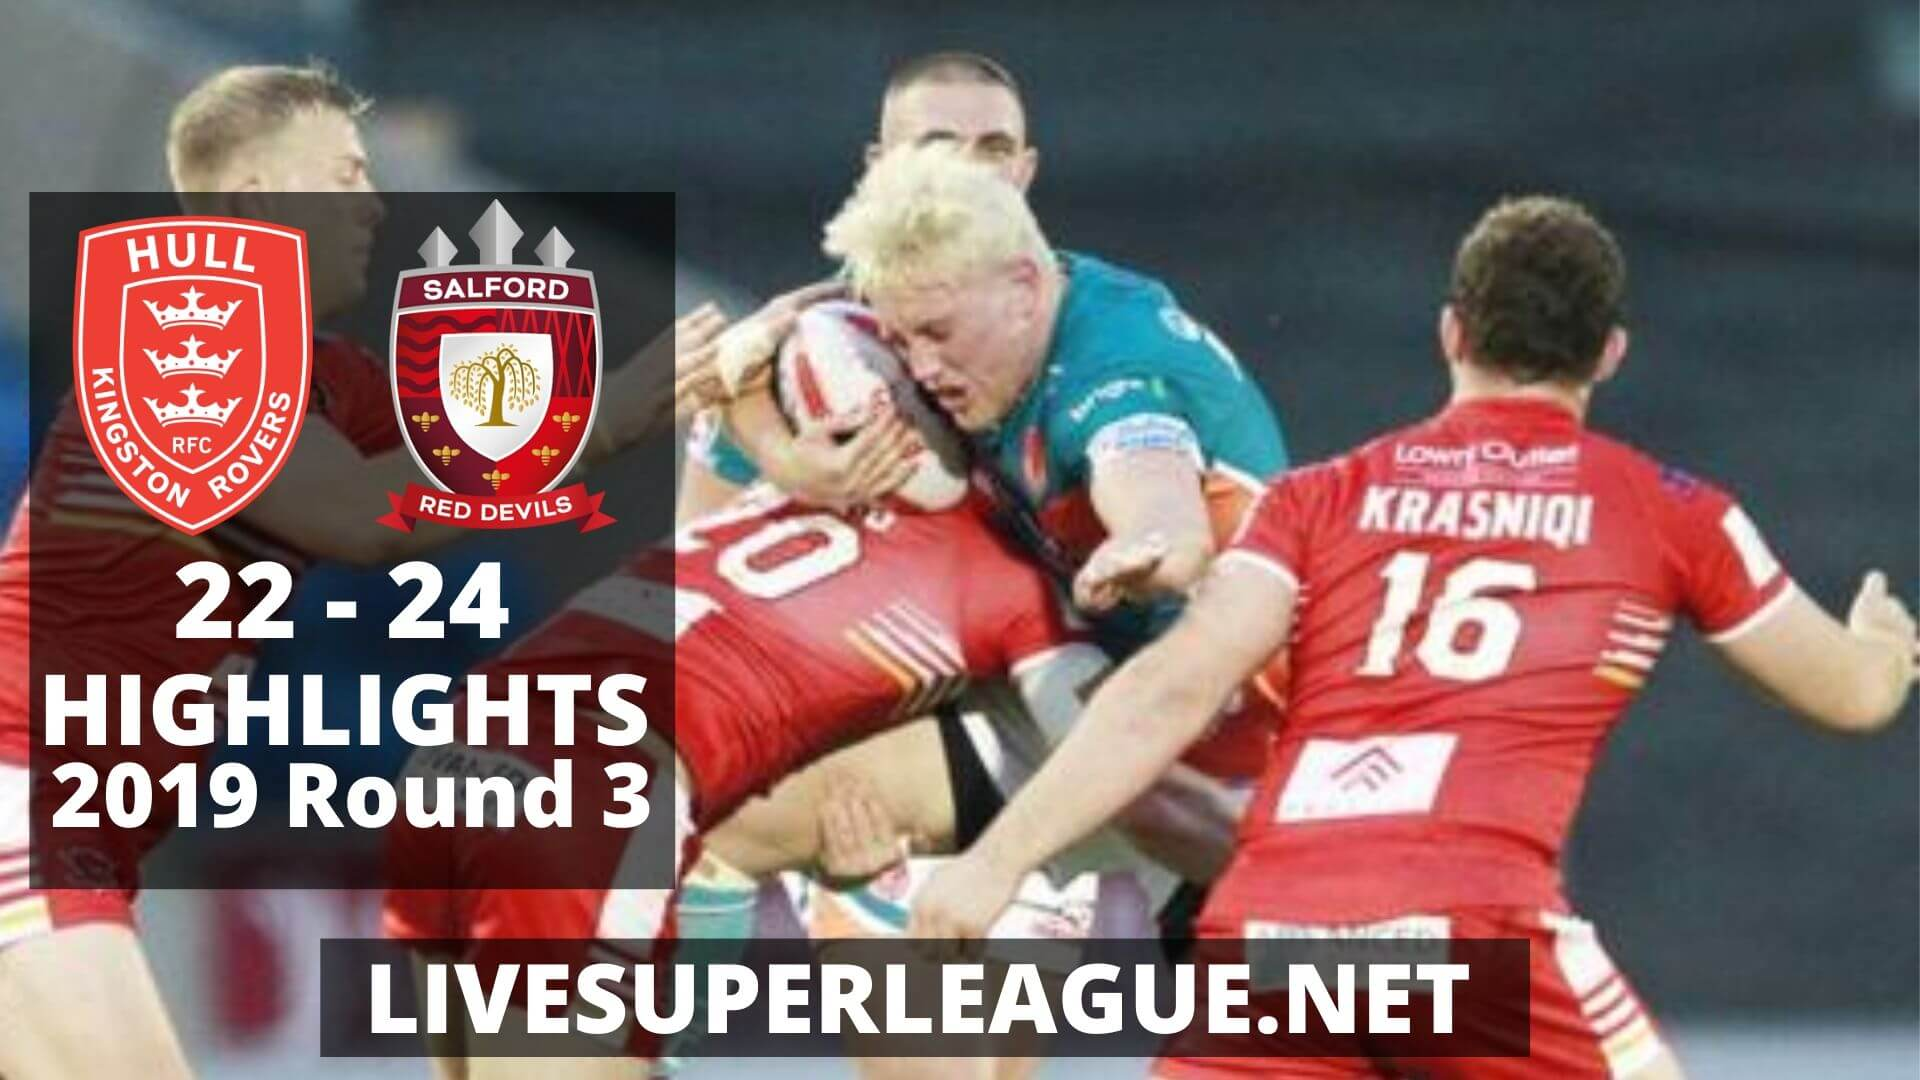 Hull Kingston Rovers Vs Salford Red Devils Highlights 2019 Round 3